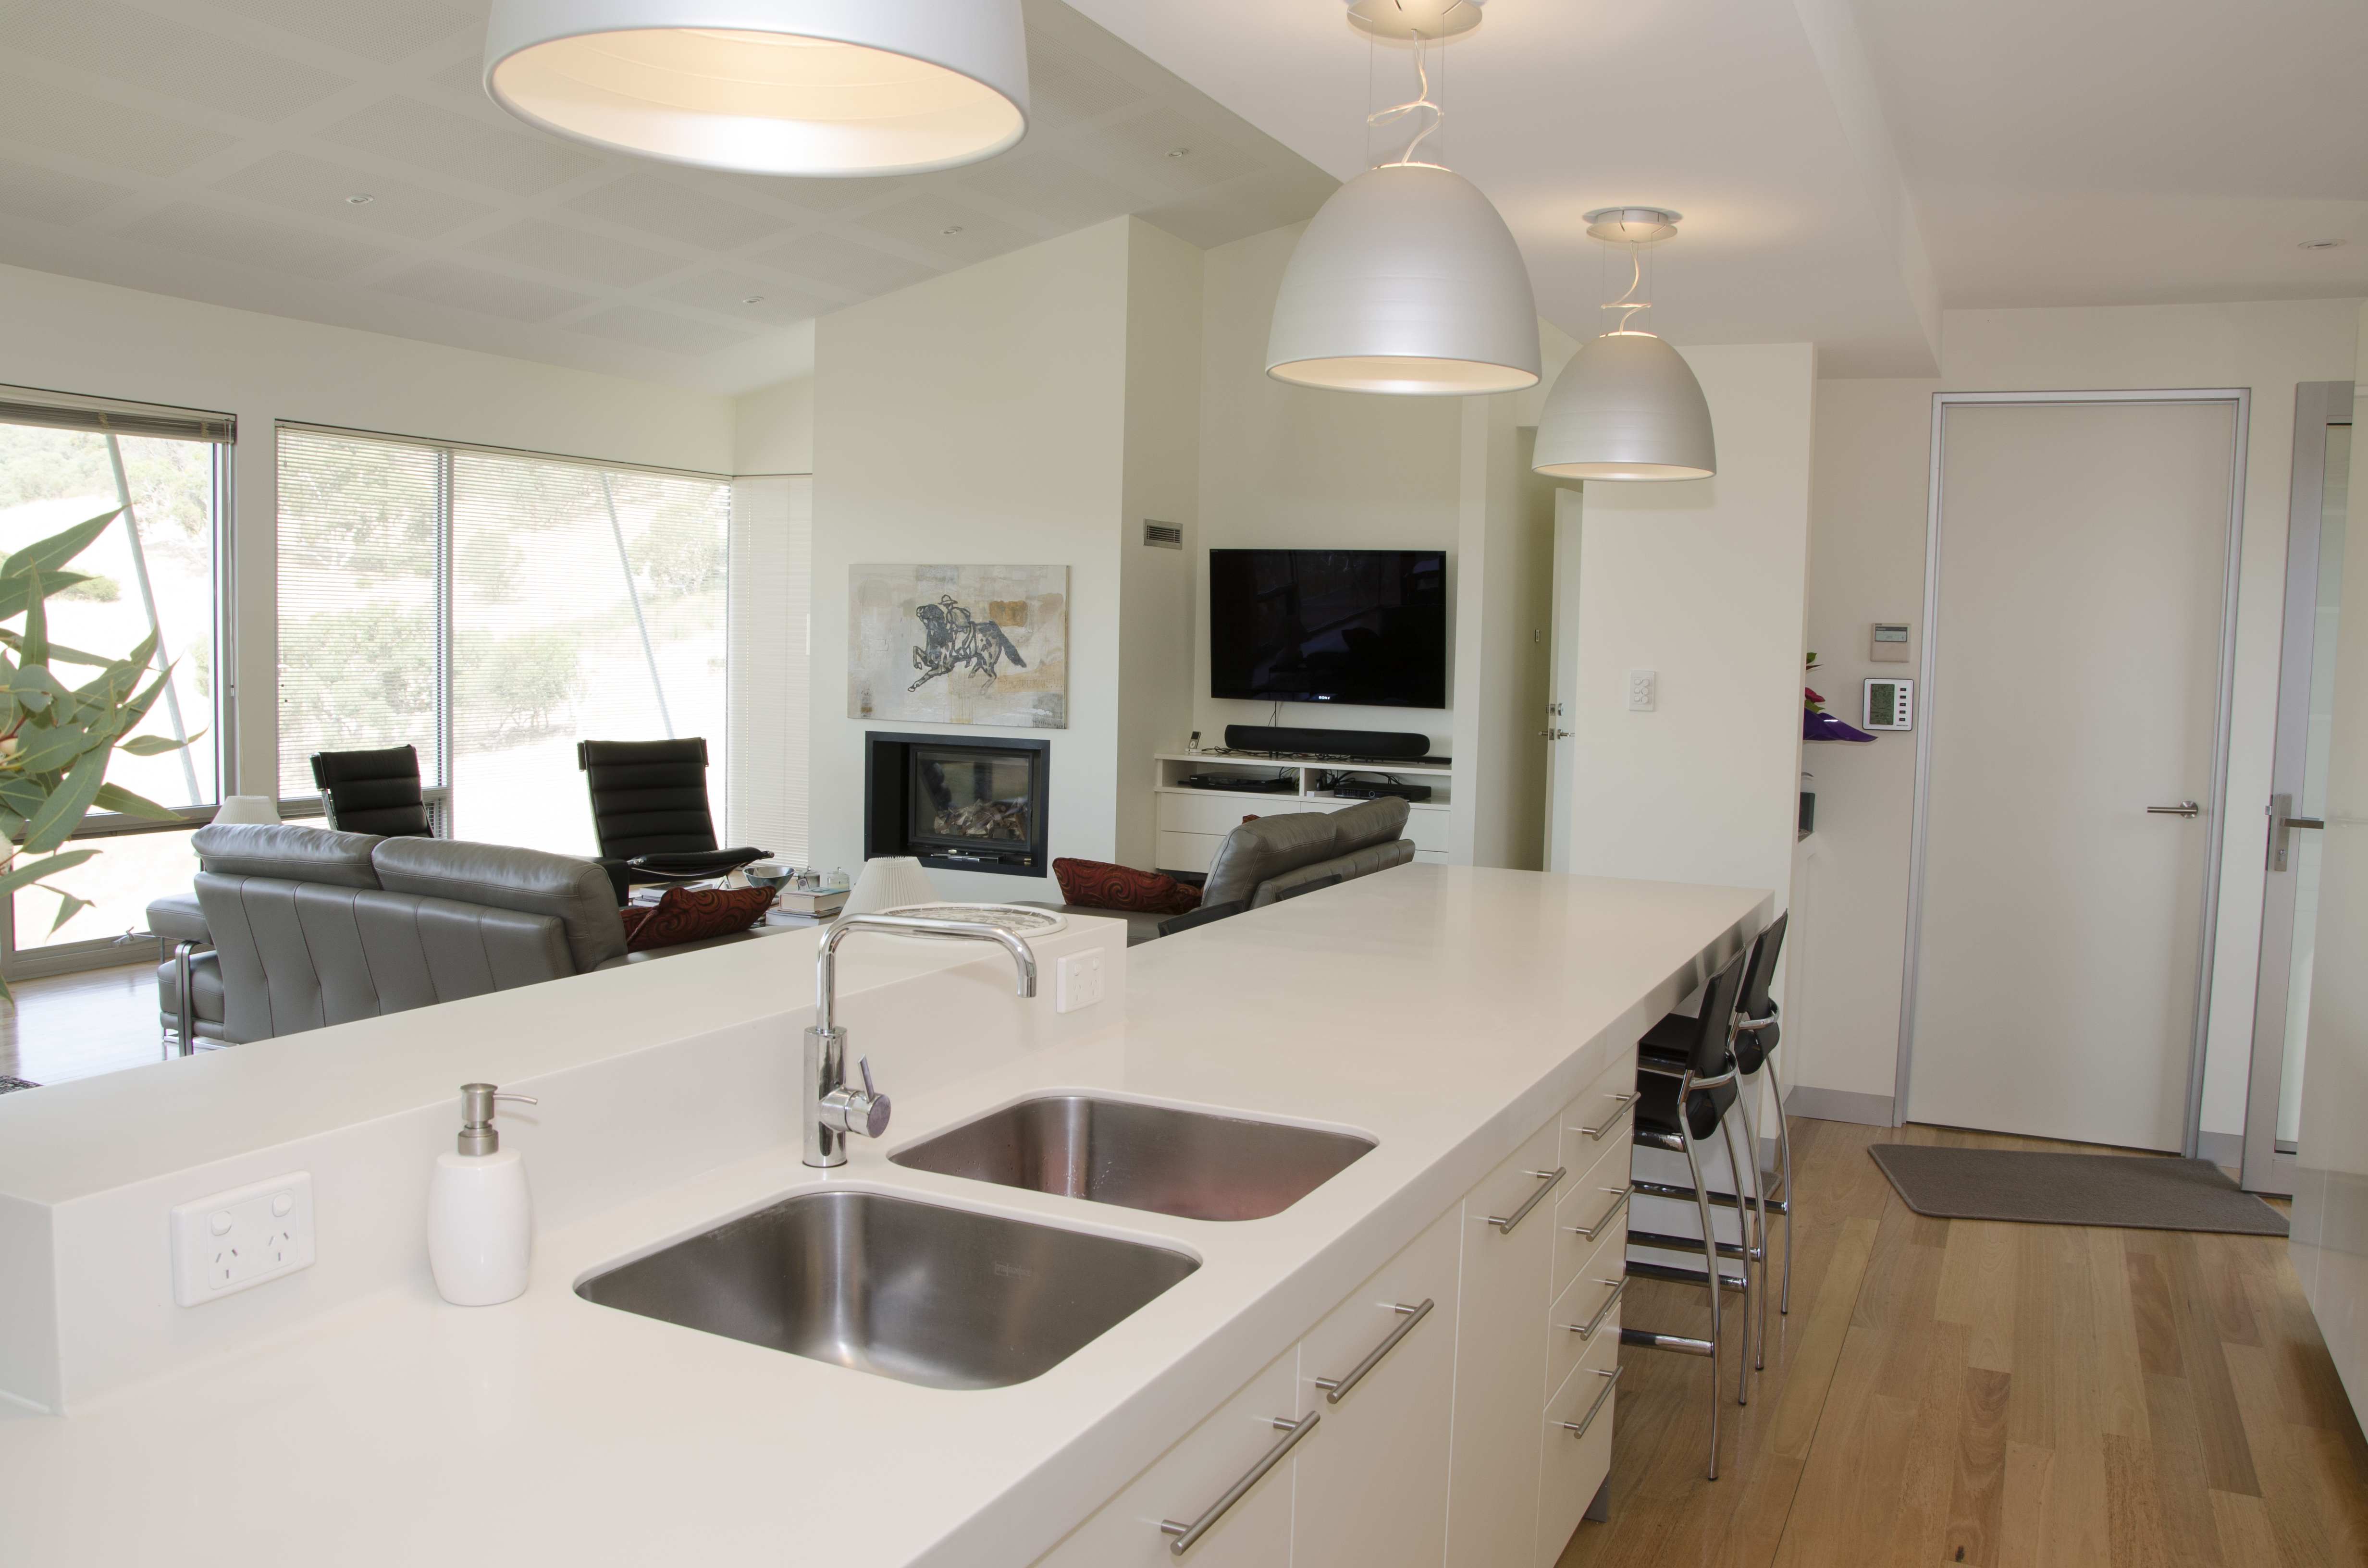 A Minimalist Kitchen Design That Is Perfect For